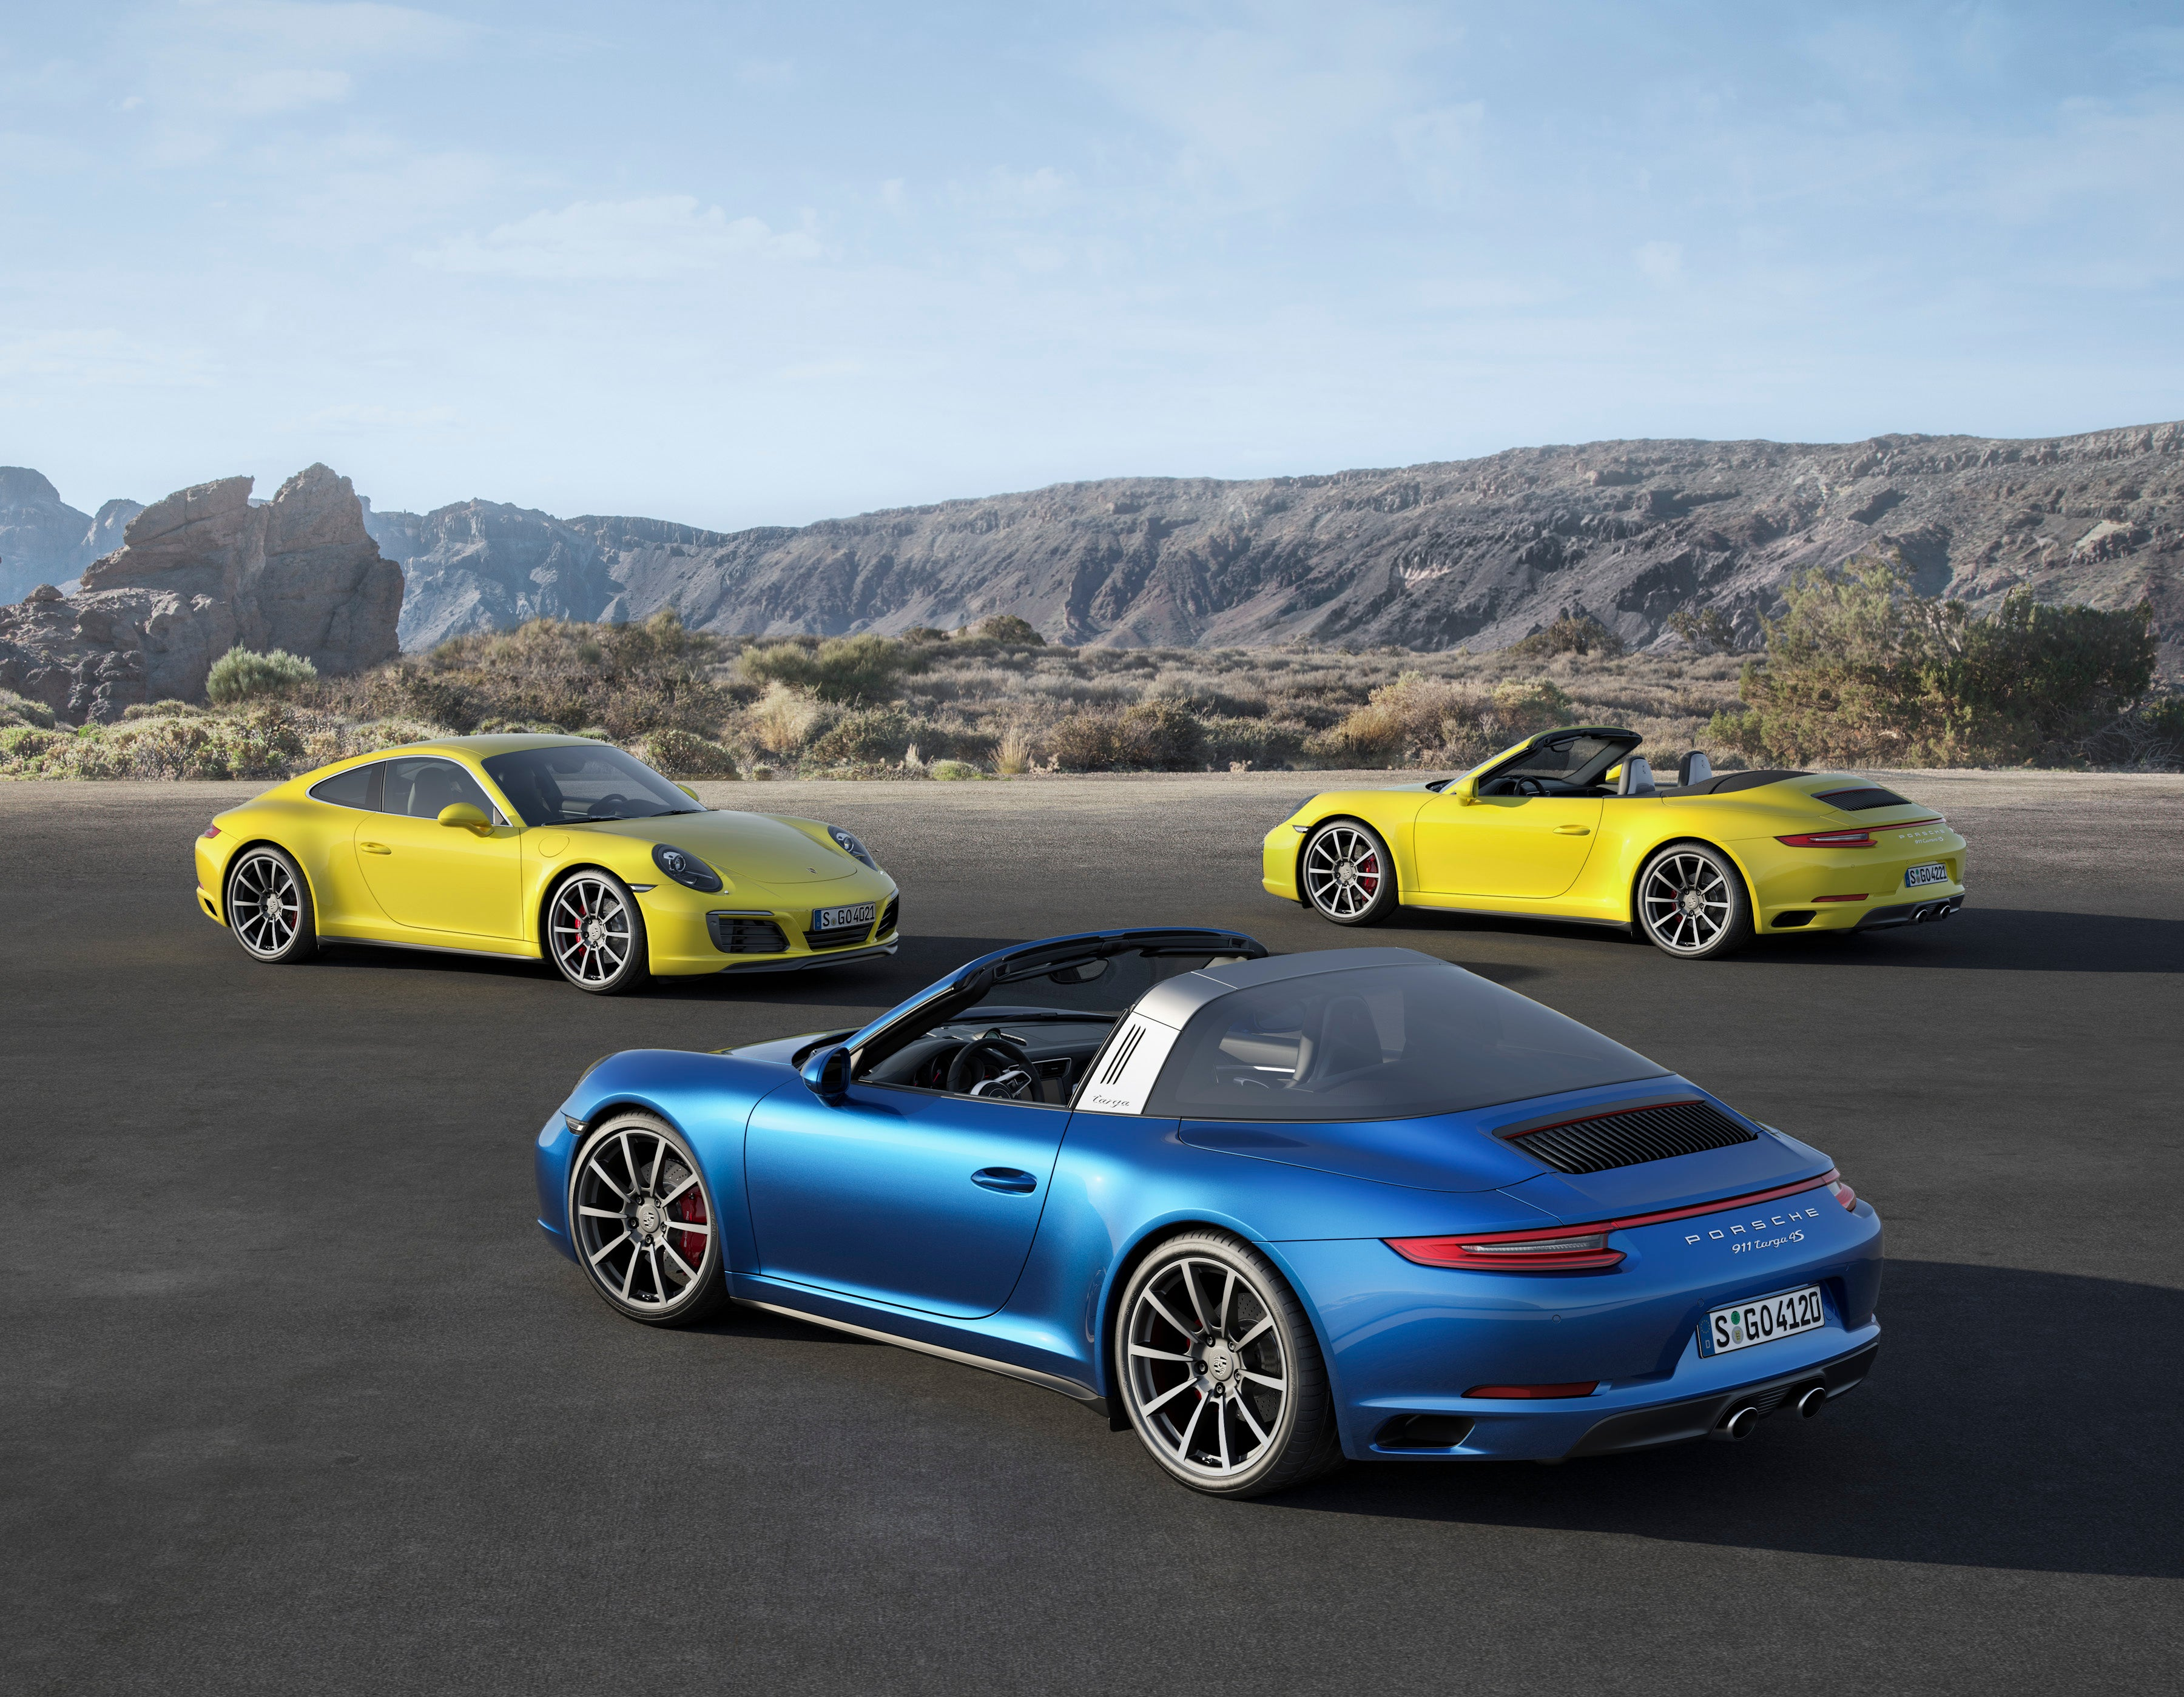 Autodesk Vred Professional 2016 Porsche Have Reveled That The New 911 Carrera 4